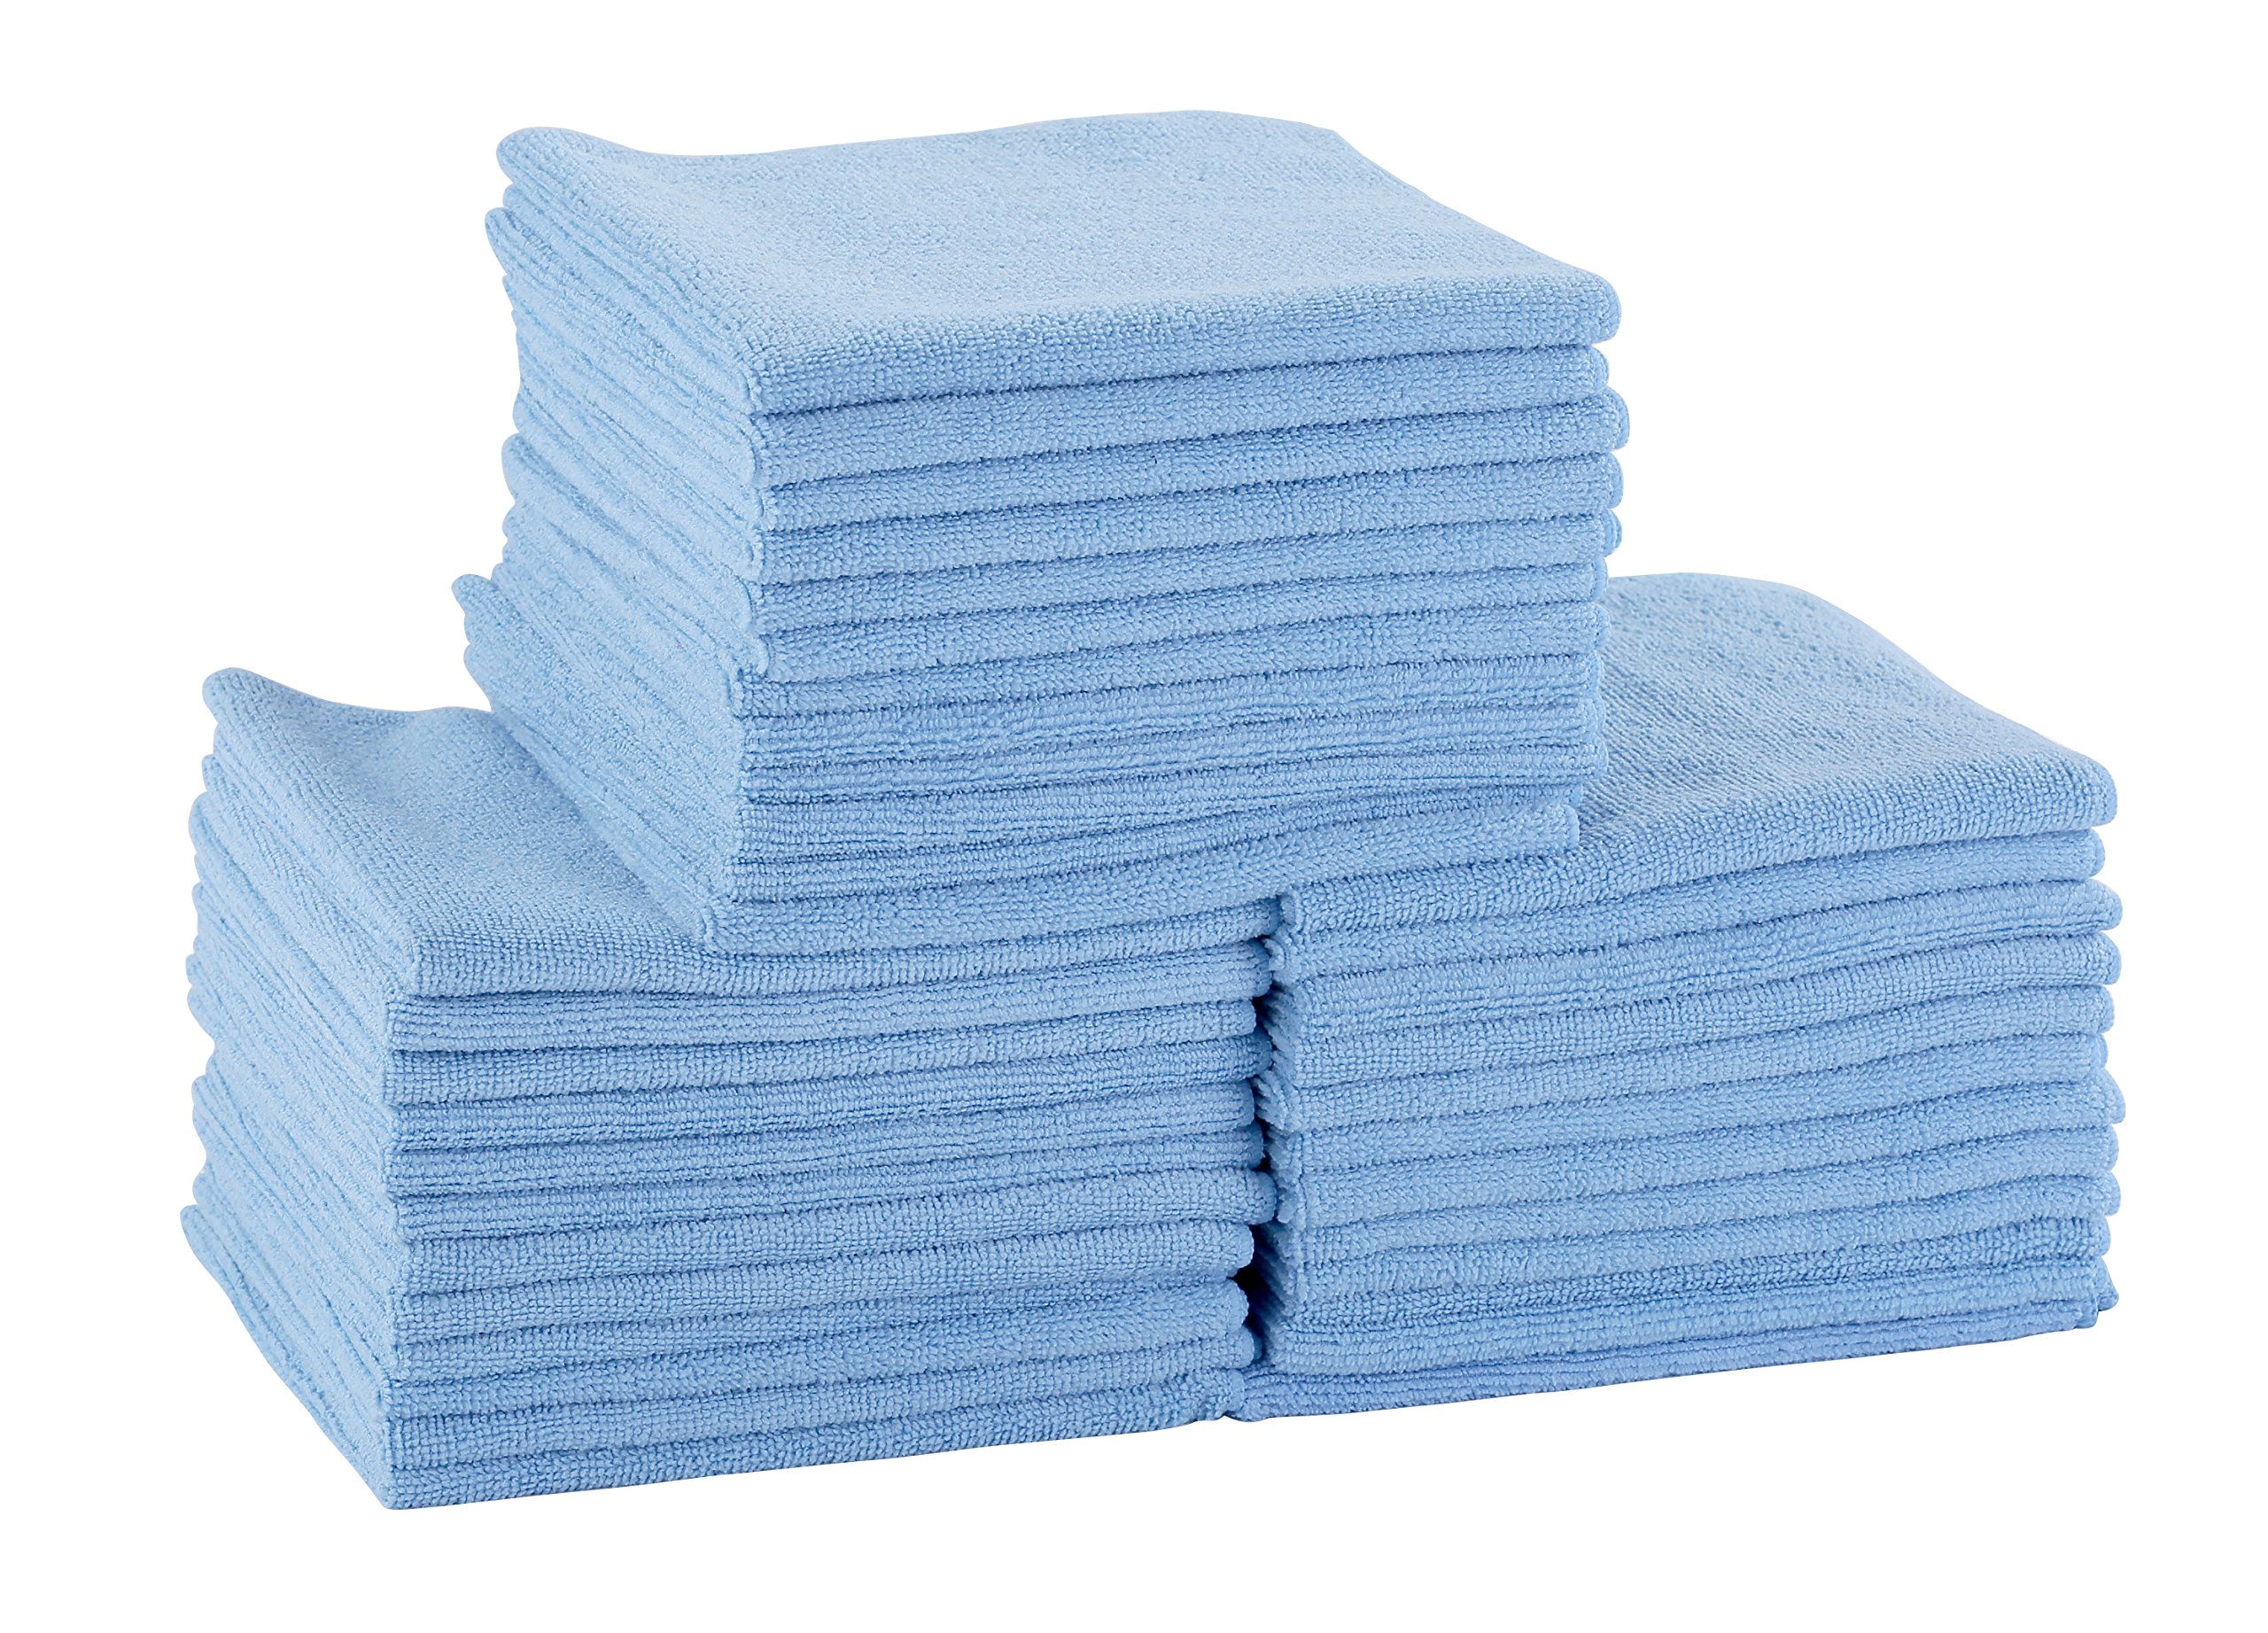 DRI Professional Extra-Thick Microfiber Cleaning Cloth 72 Pack Blue by DRI (Image #1)